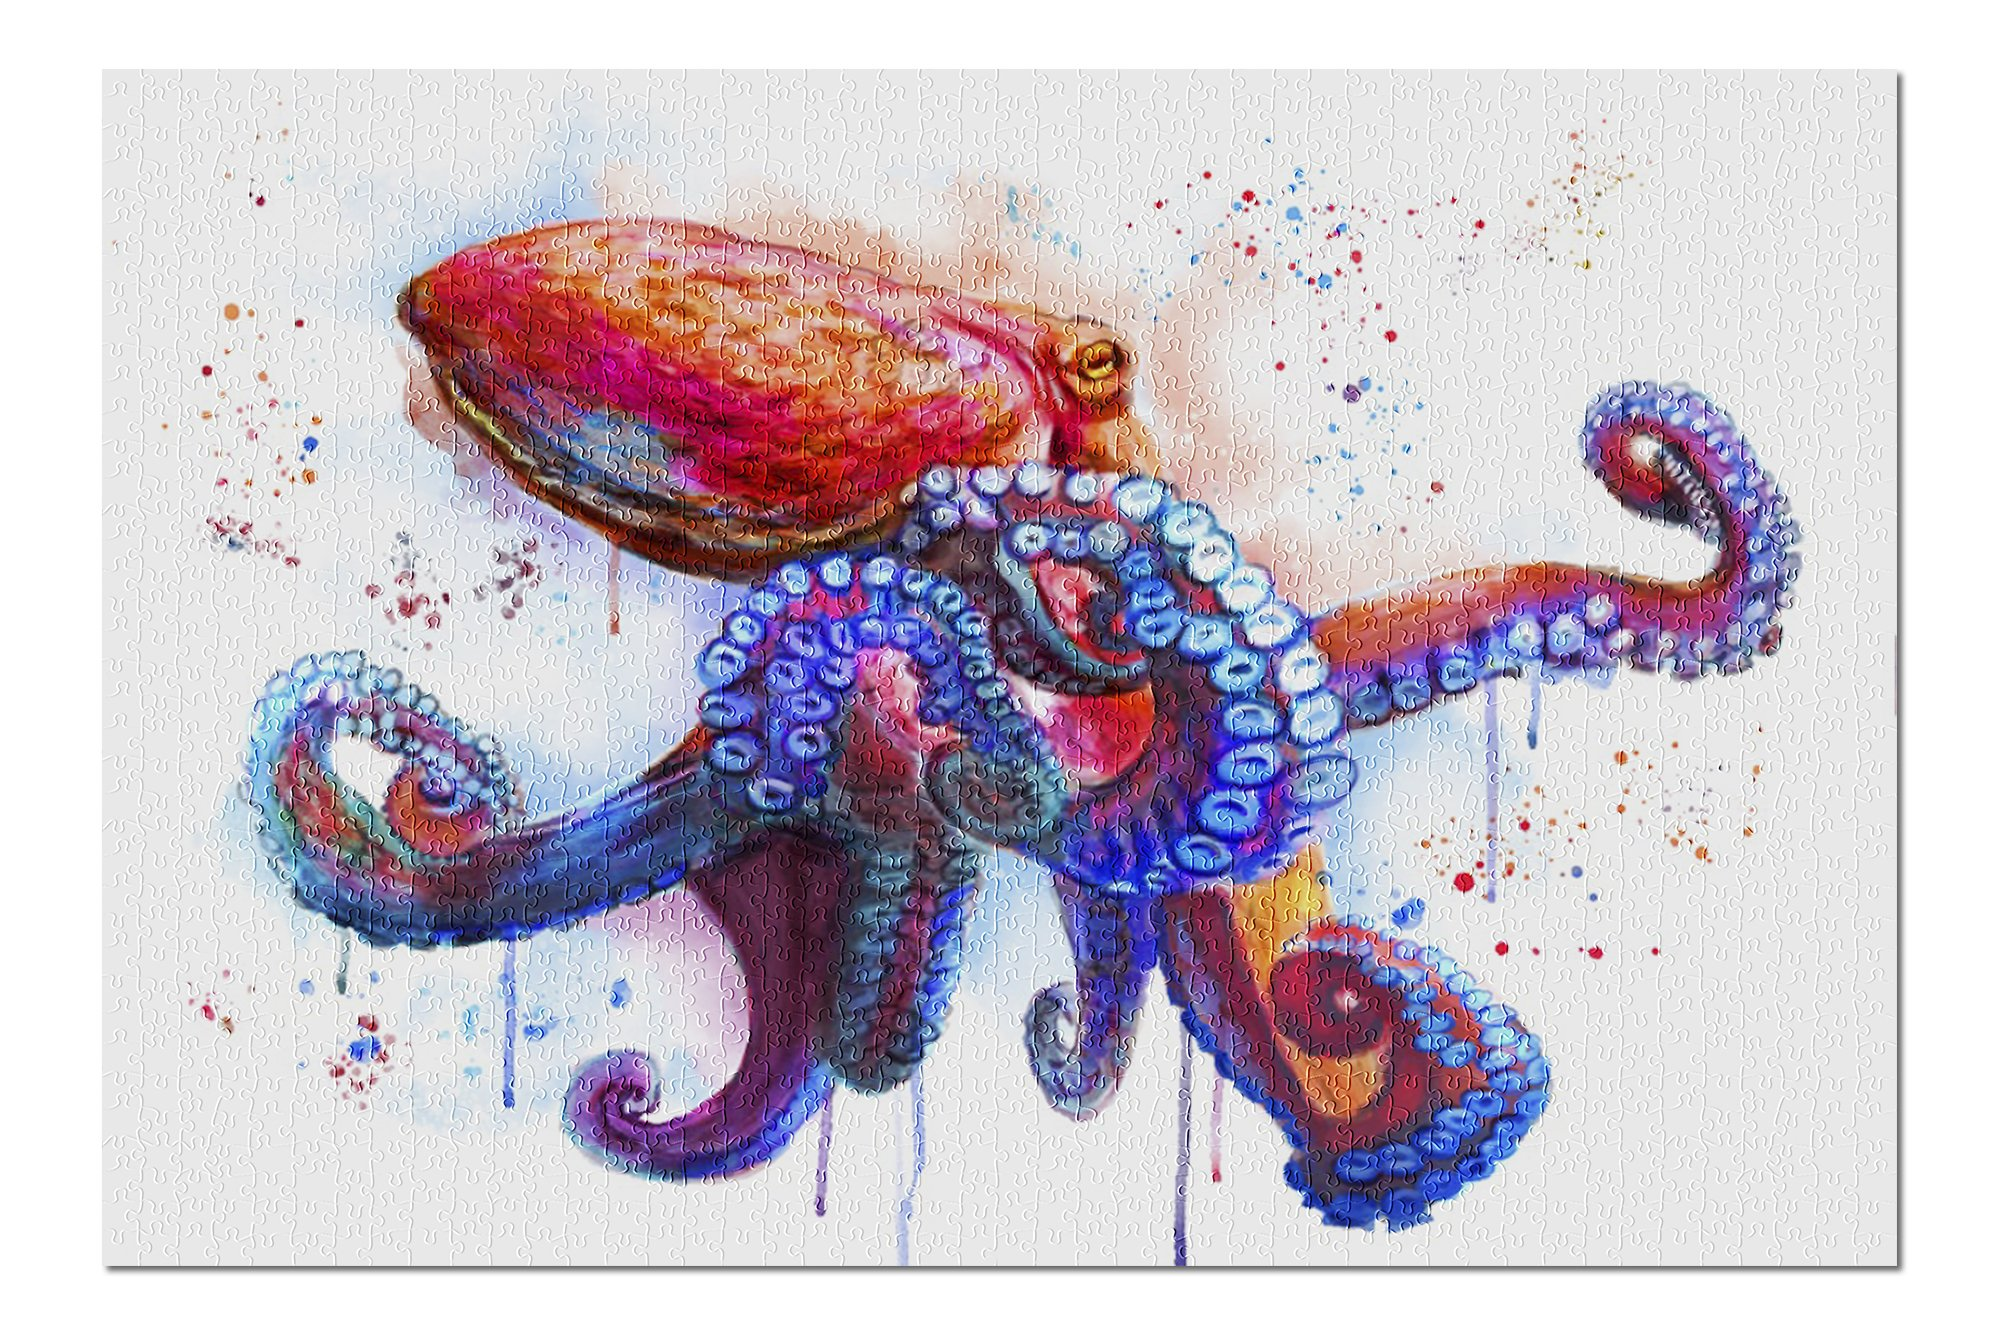 Octopus - Watercolor (Premium 1000 Piece Jigsaw Puzzle for Adults, 19x27, Made in USA!)